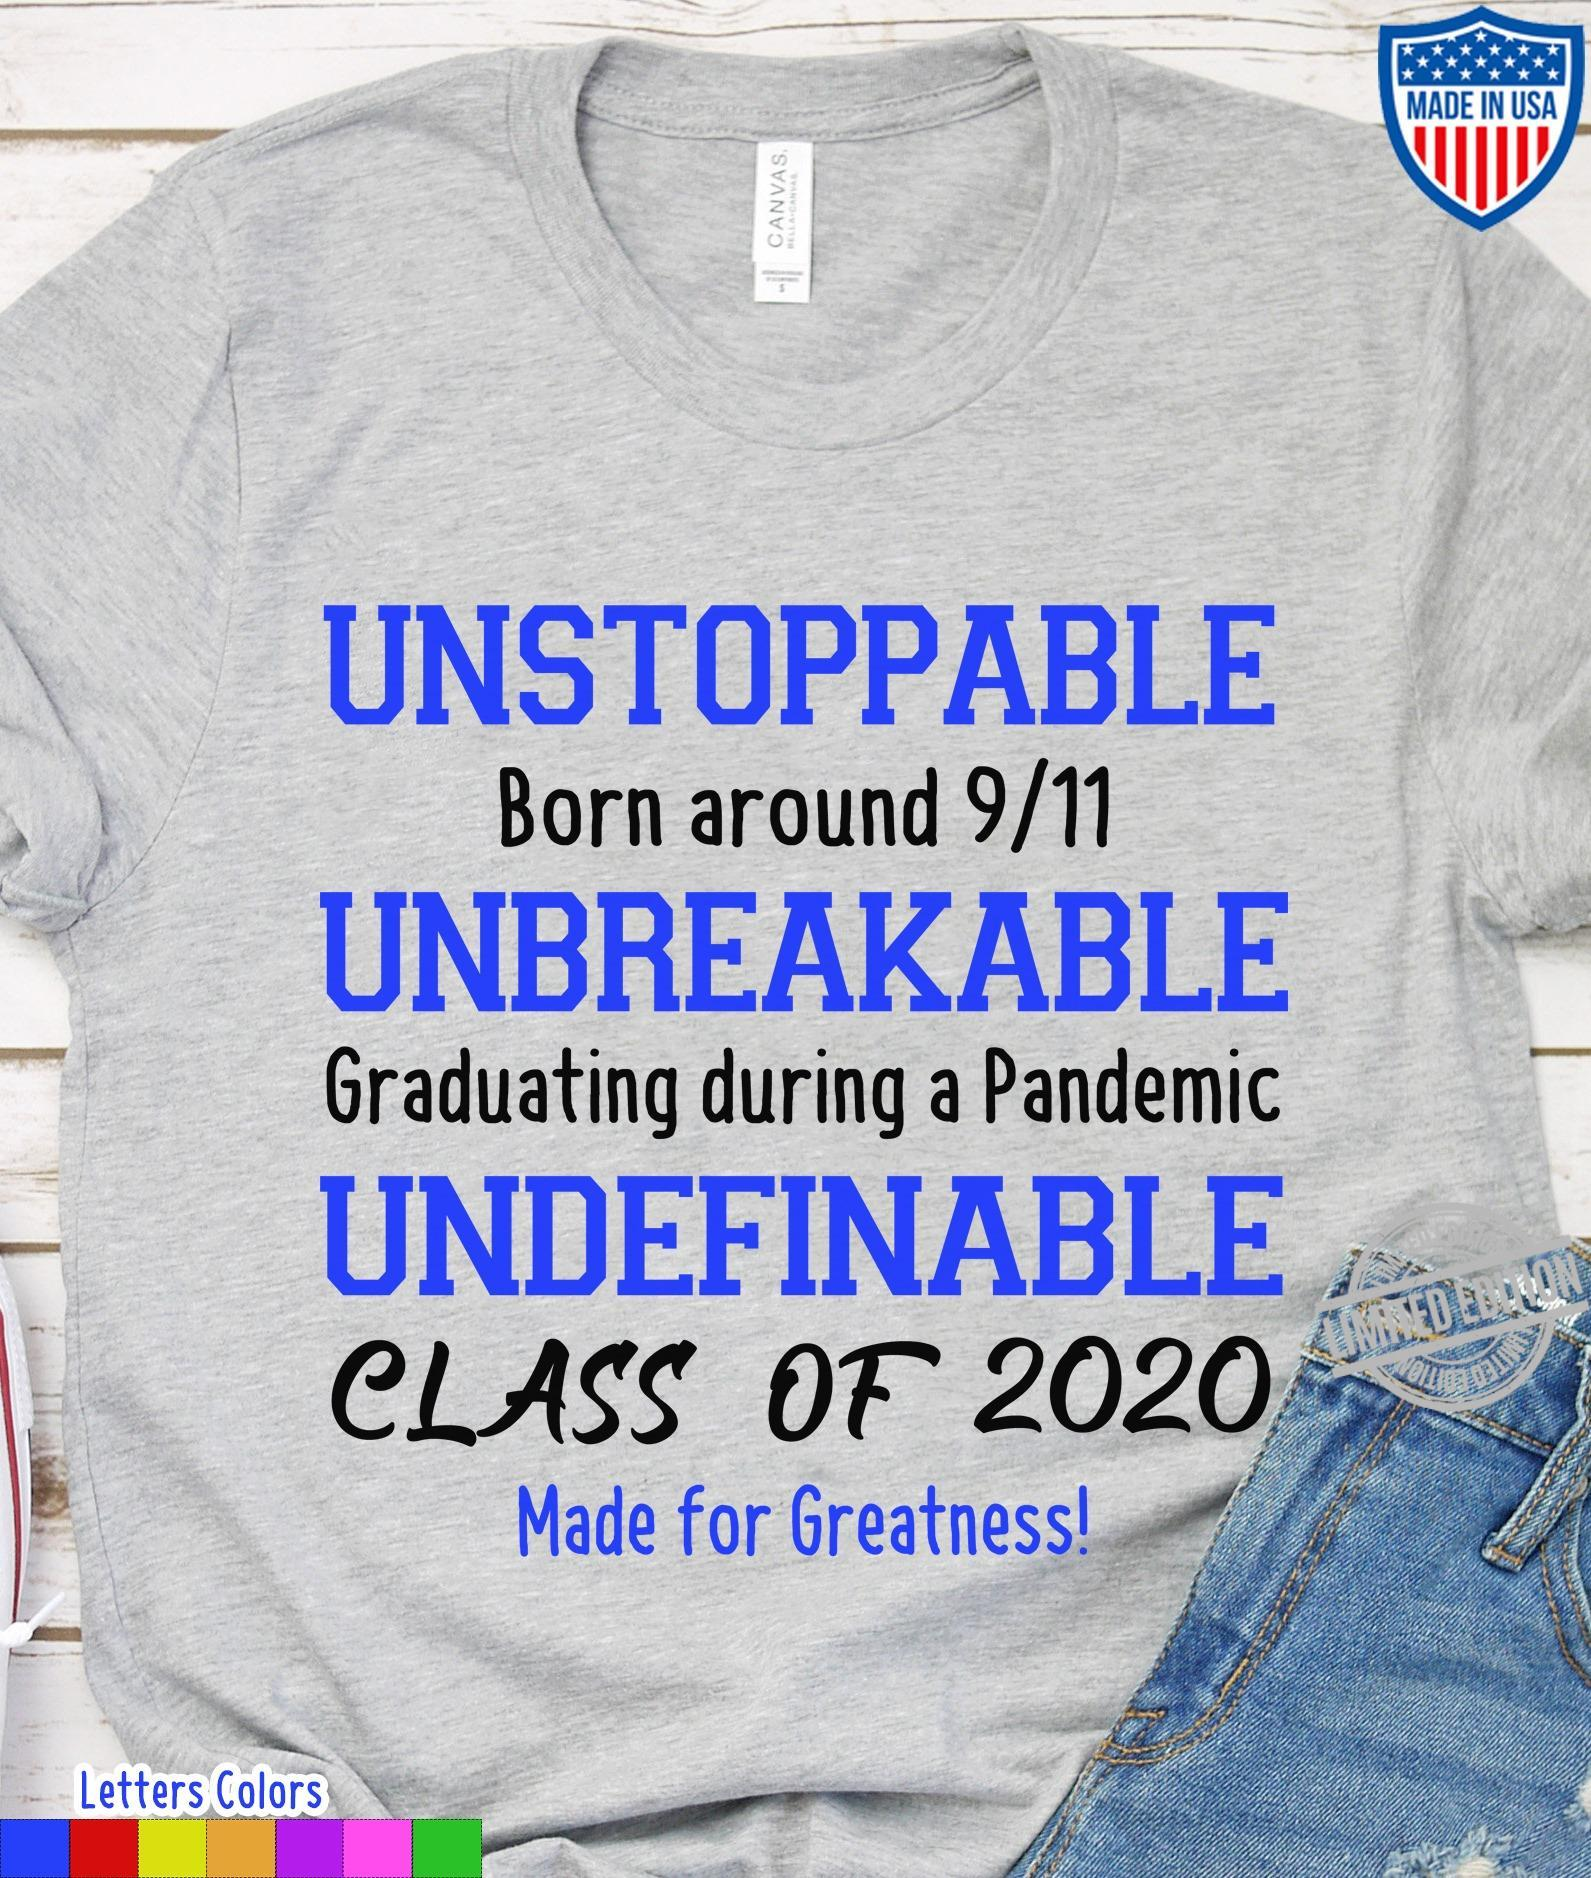 Unstoppable Unbreakable Undefinable Class Of 2020 Made For Greatness Shirt